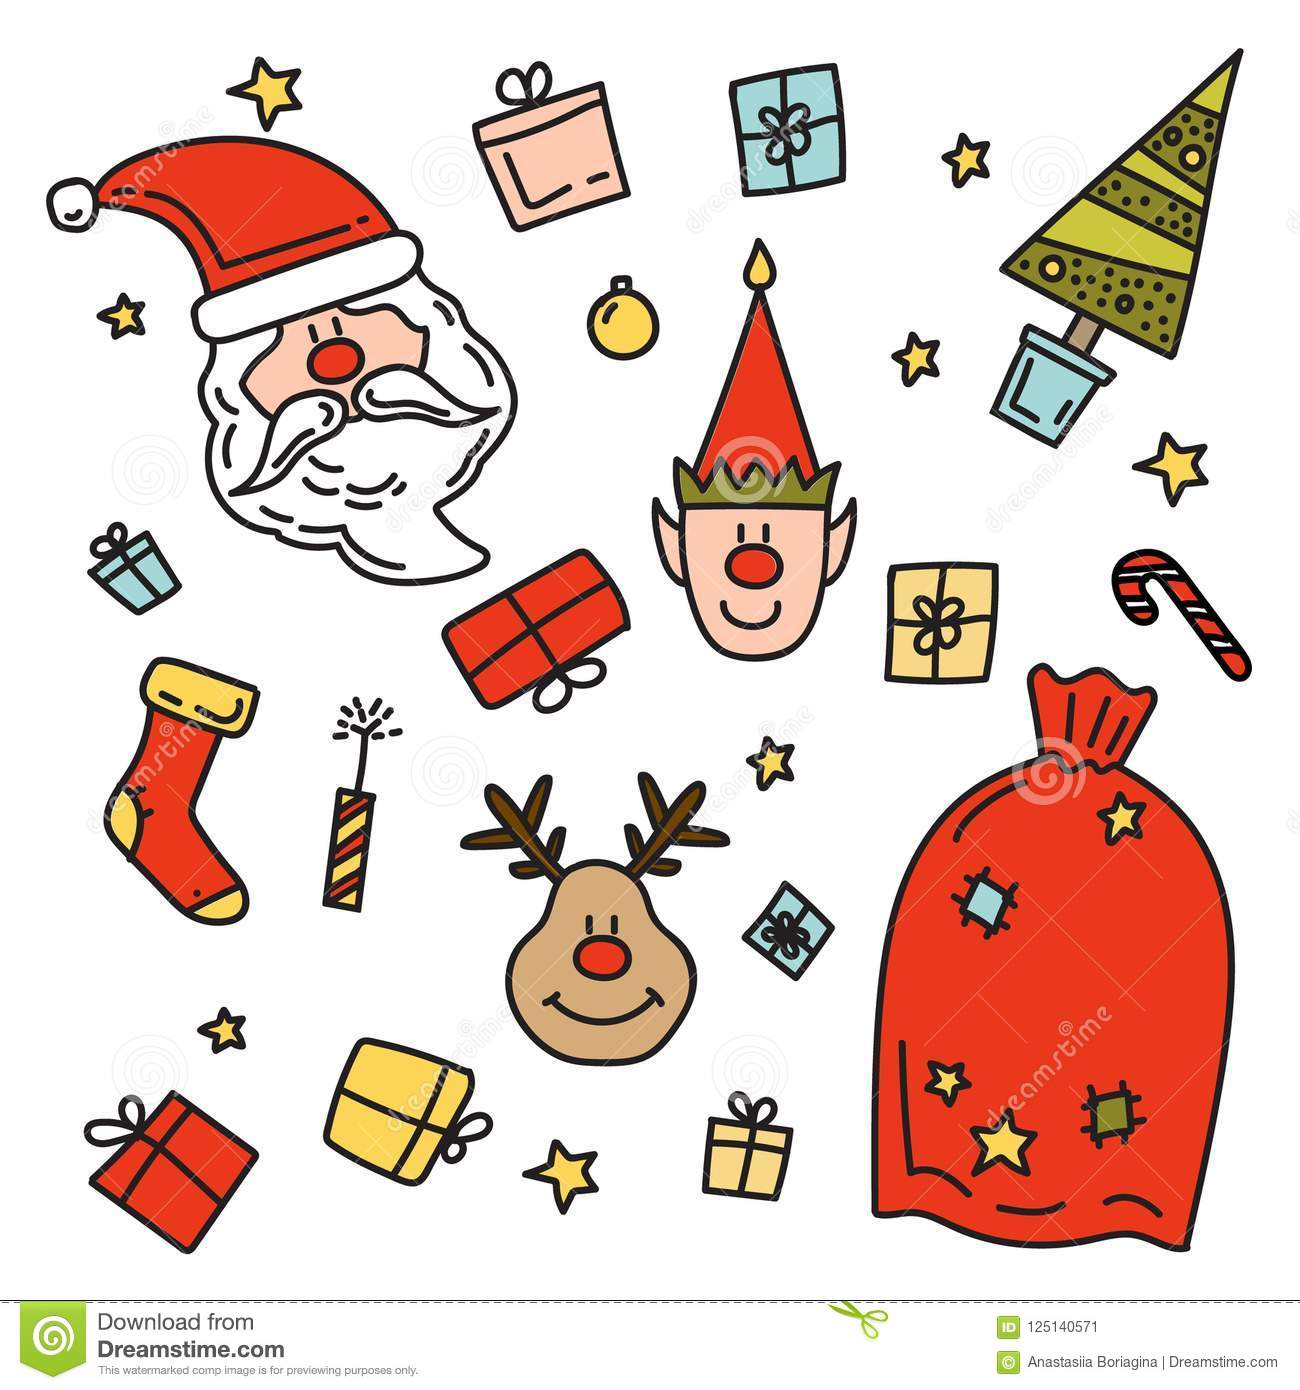 Drawings Of Christmas Presents.Doodle Drawing Santa Claus Christmas Gifts Deer Elf Stock